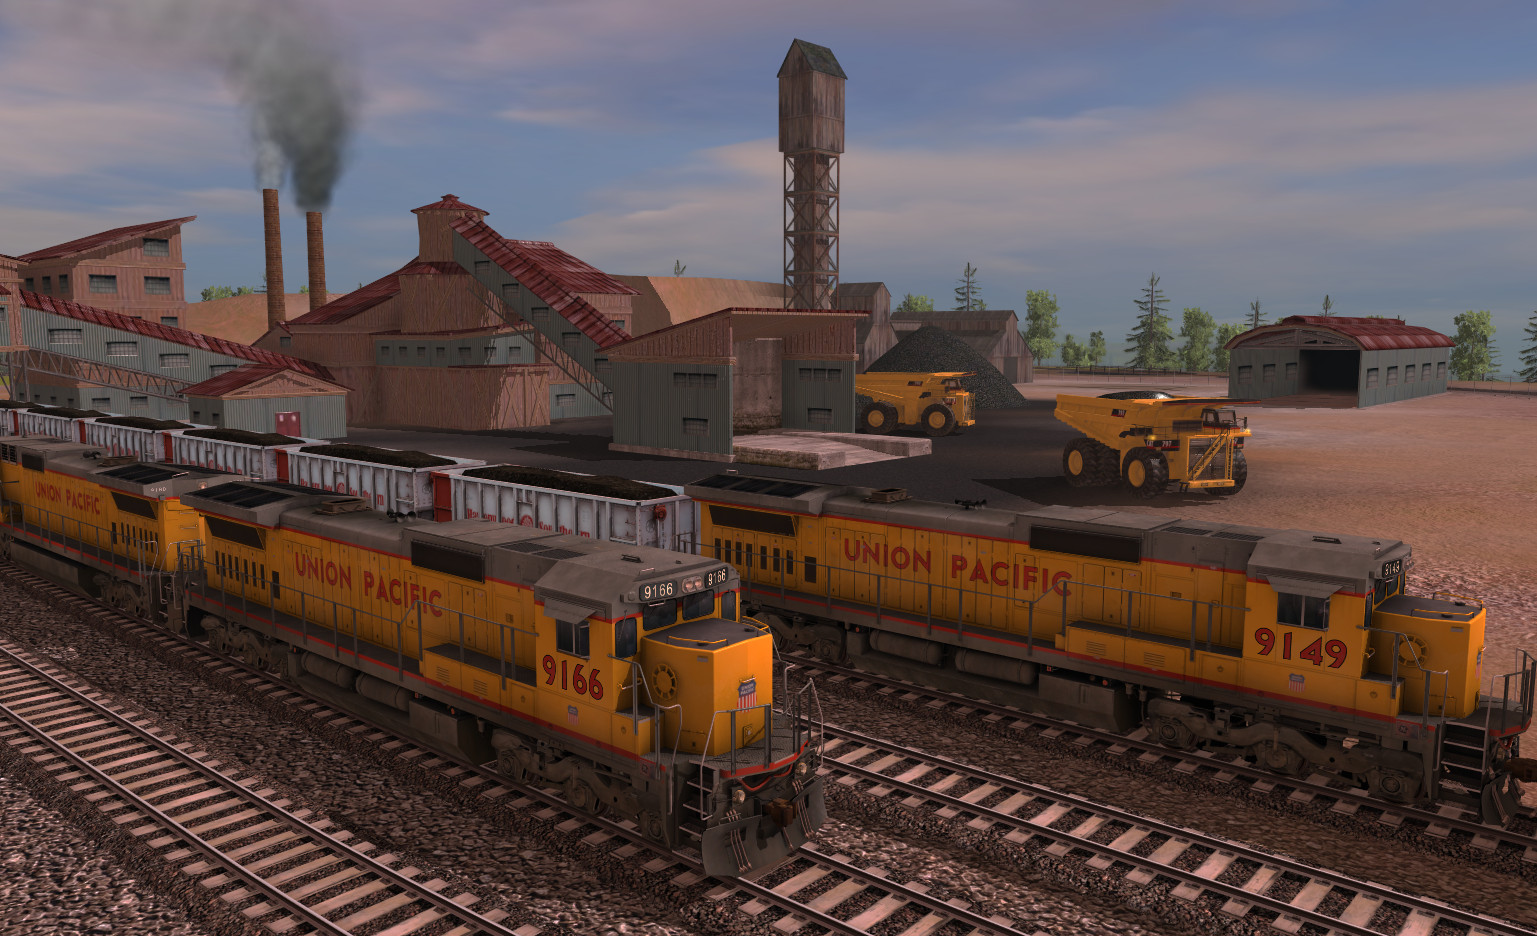 Trainz 2019 DLC: Union Pacific GE C40-8